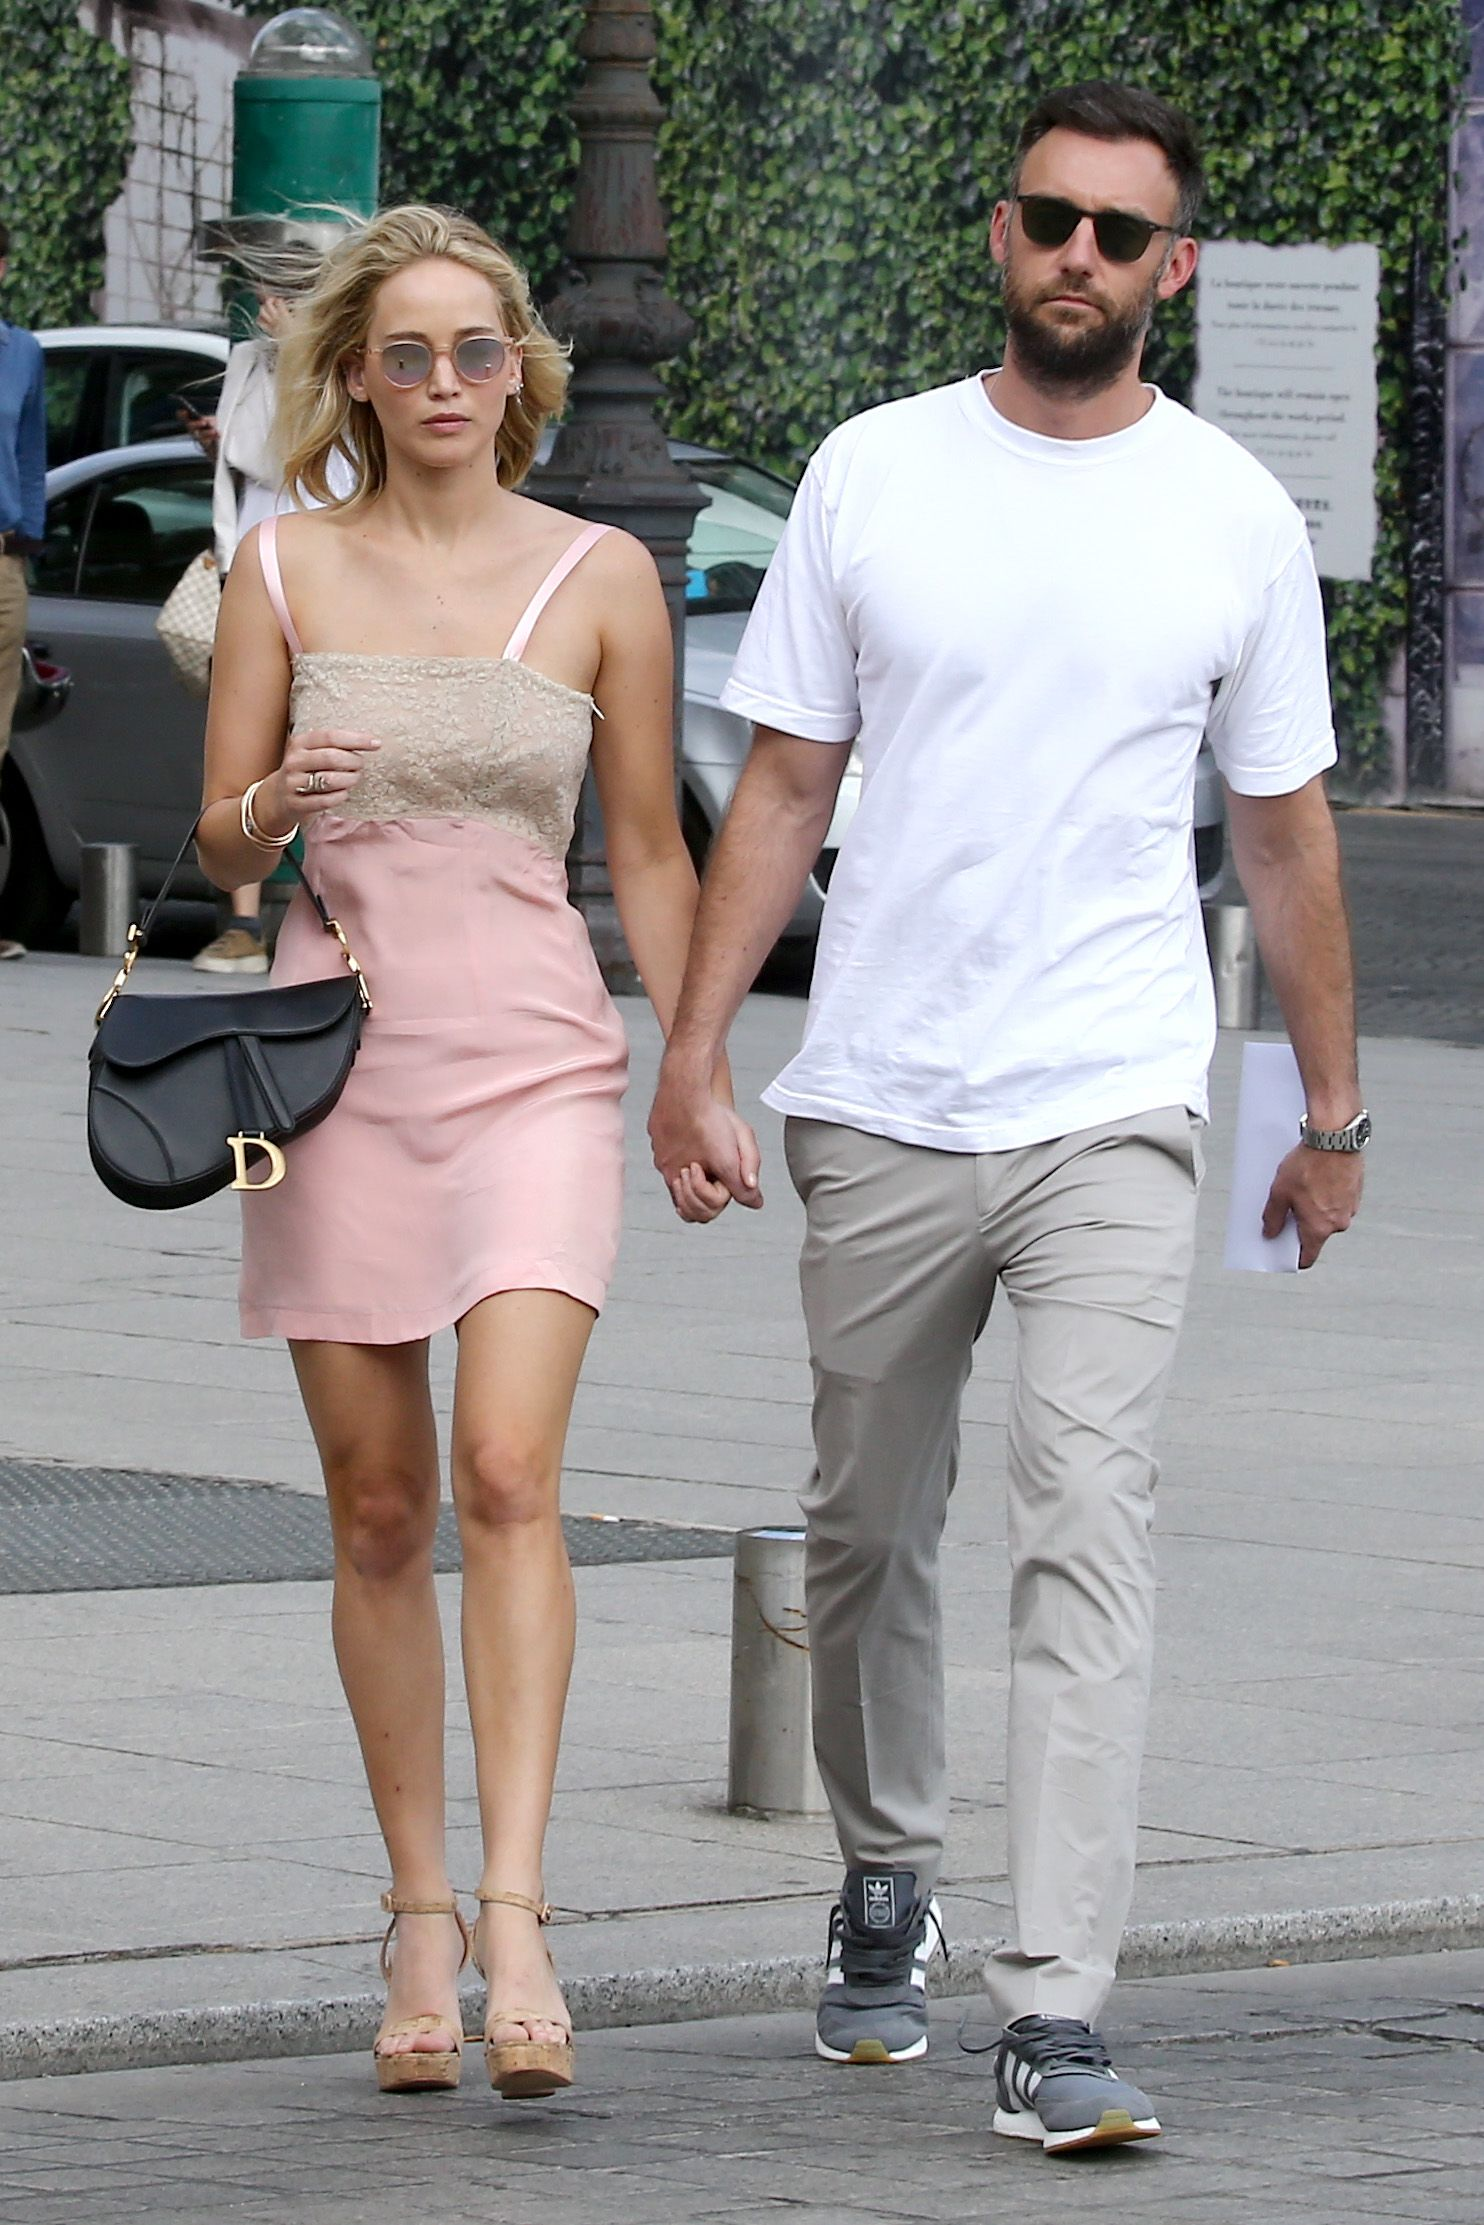 Jennifer Lawrence is Spotted Strolling Hand in Hand with Cooke Maroney in Paris, France.